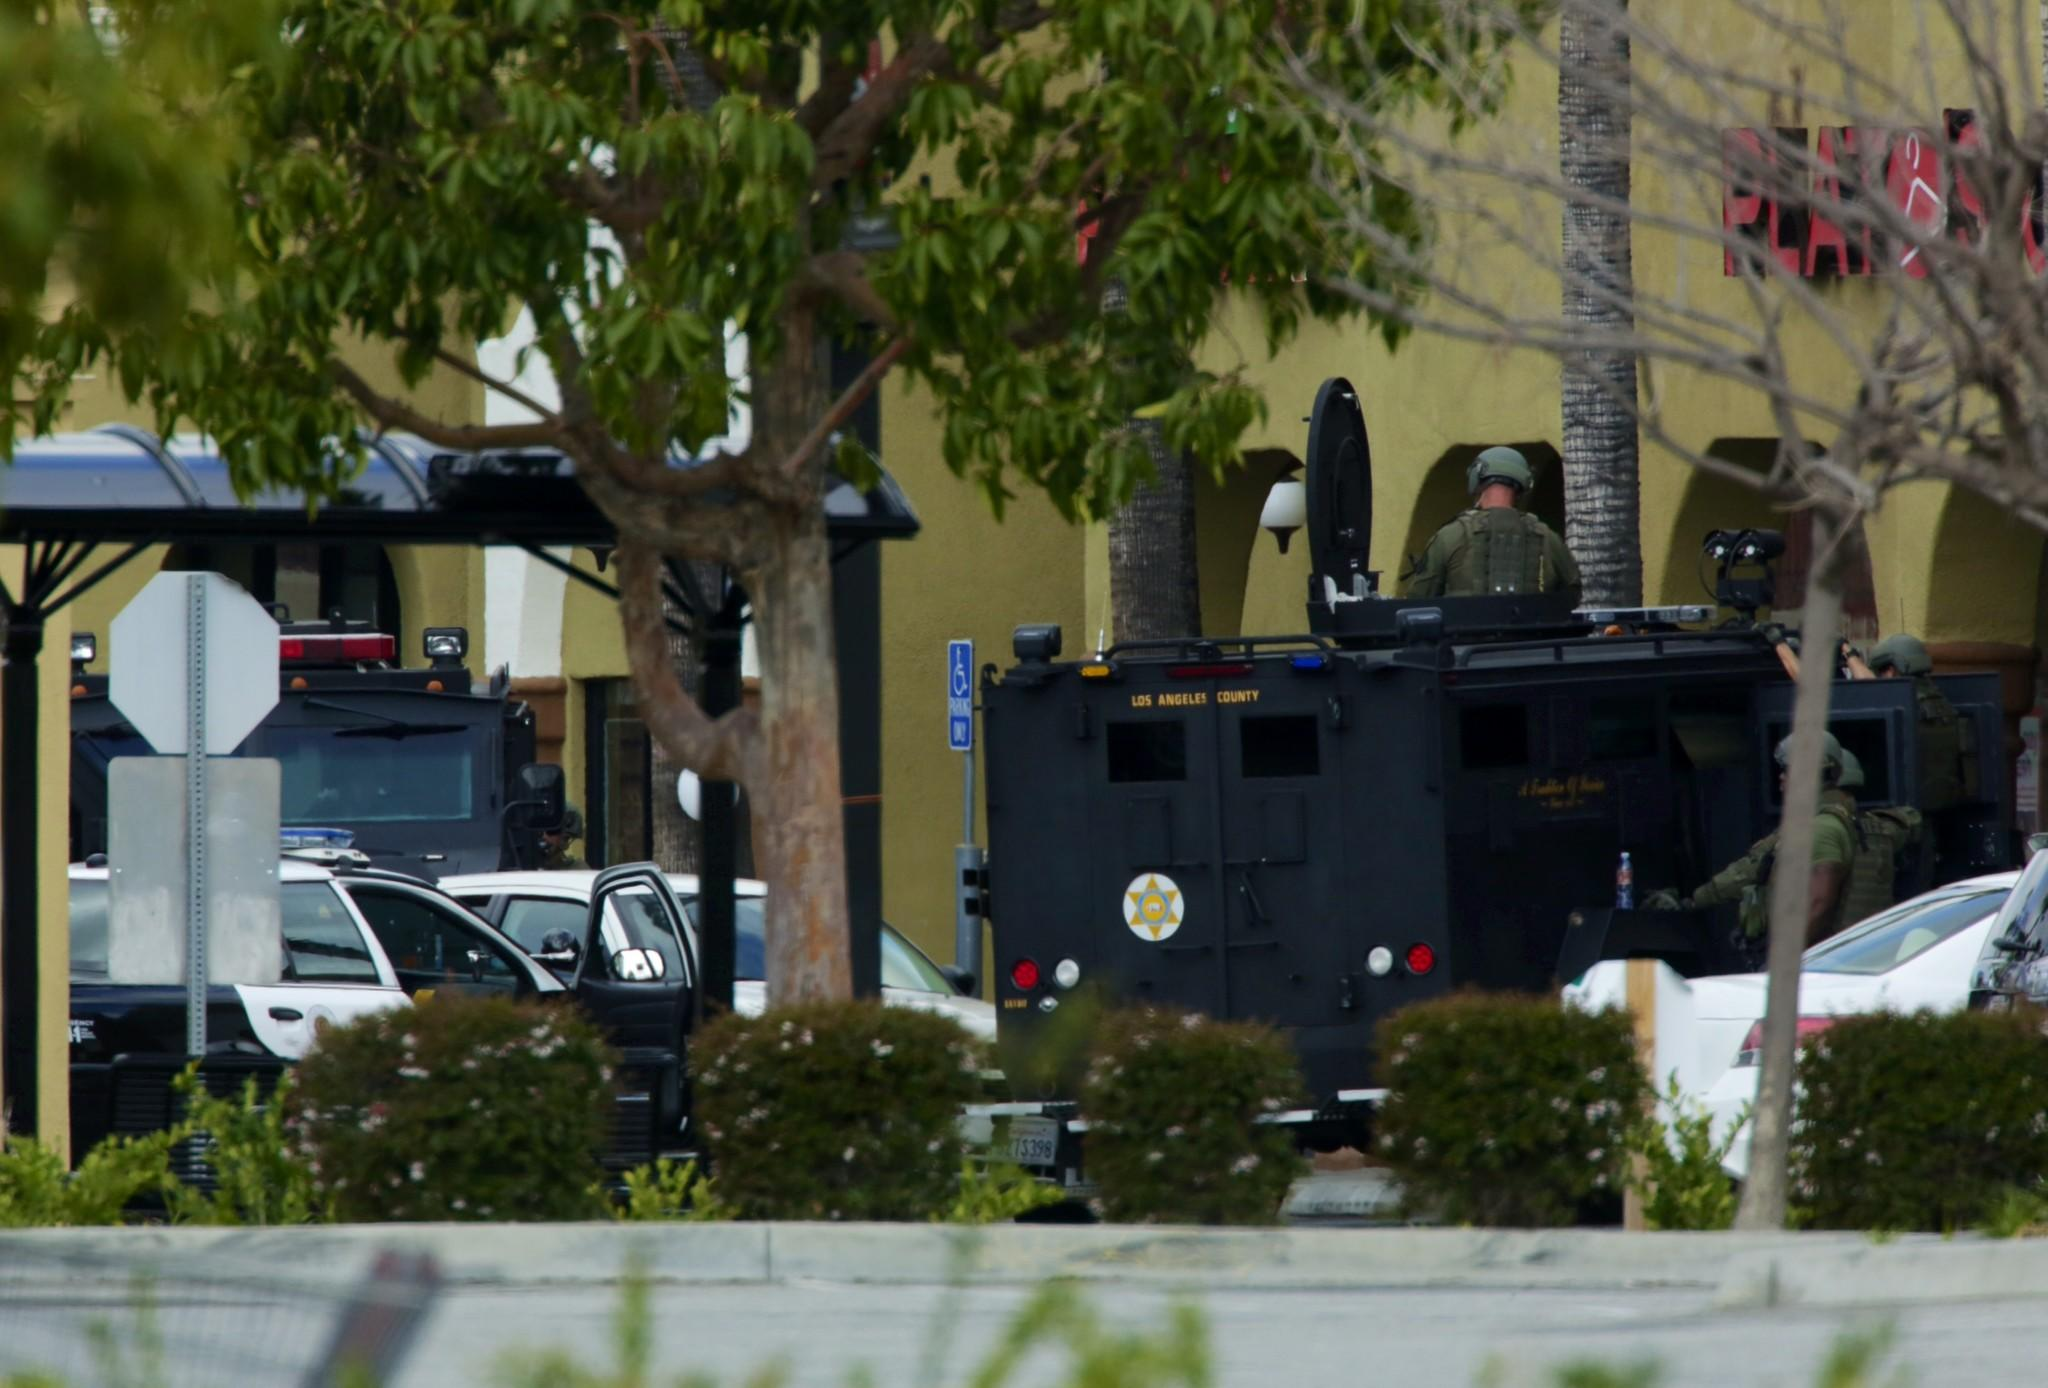 Law enforcement vehicles surround a suspected shooter inside a white Dodge Magnum in the parking lot of a shopping plaza on Carson Street in Hawaiian Gardens.